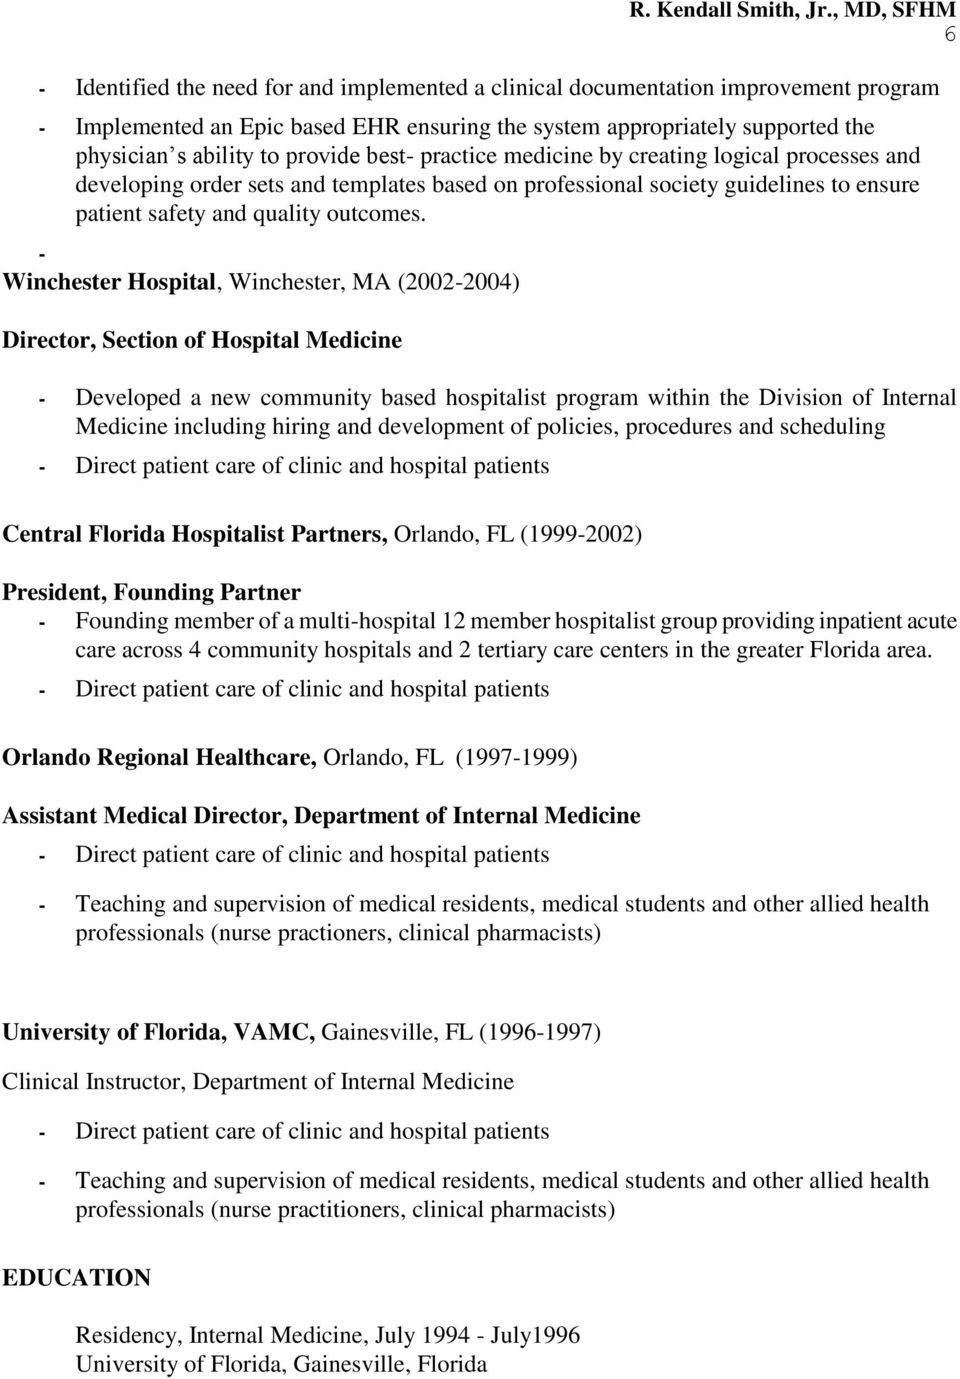 - Winchester Hospital, Winchester, MA (2002-2004) Director, Section of Hospital Medicine - Developed a new community based hospitalist program within the Division of Internal Medicine including